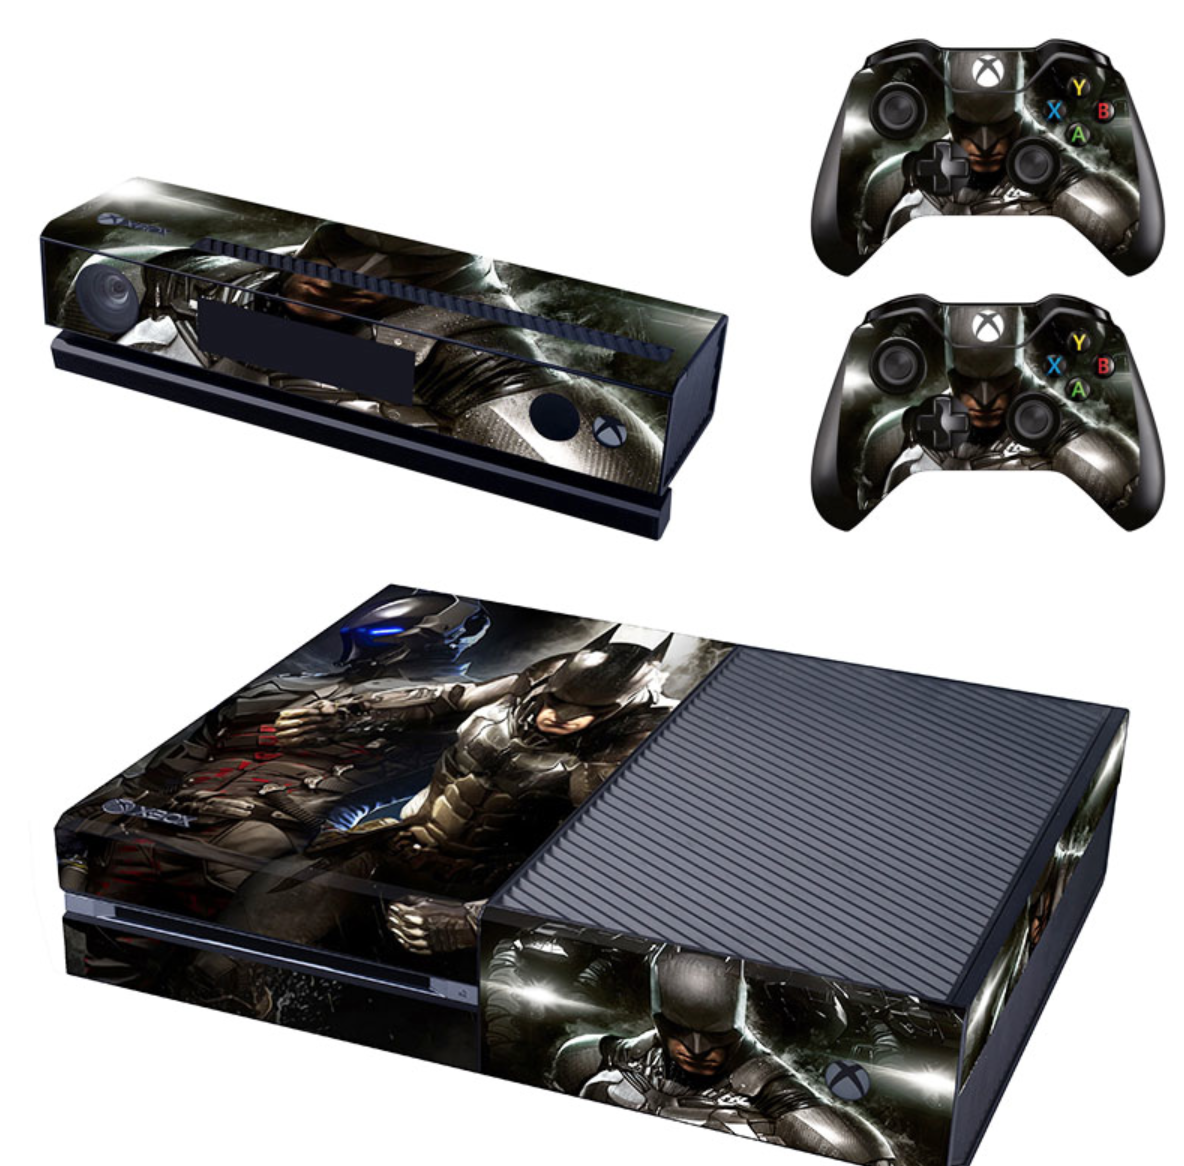 Video Games & Consoles Detroit Lions Nfl Xbox One Kinect 2 Controllers Skin Vinyl Sticker Decals Covers Crazy Price